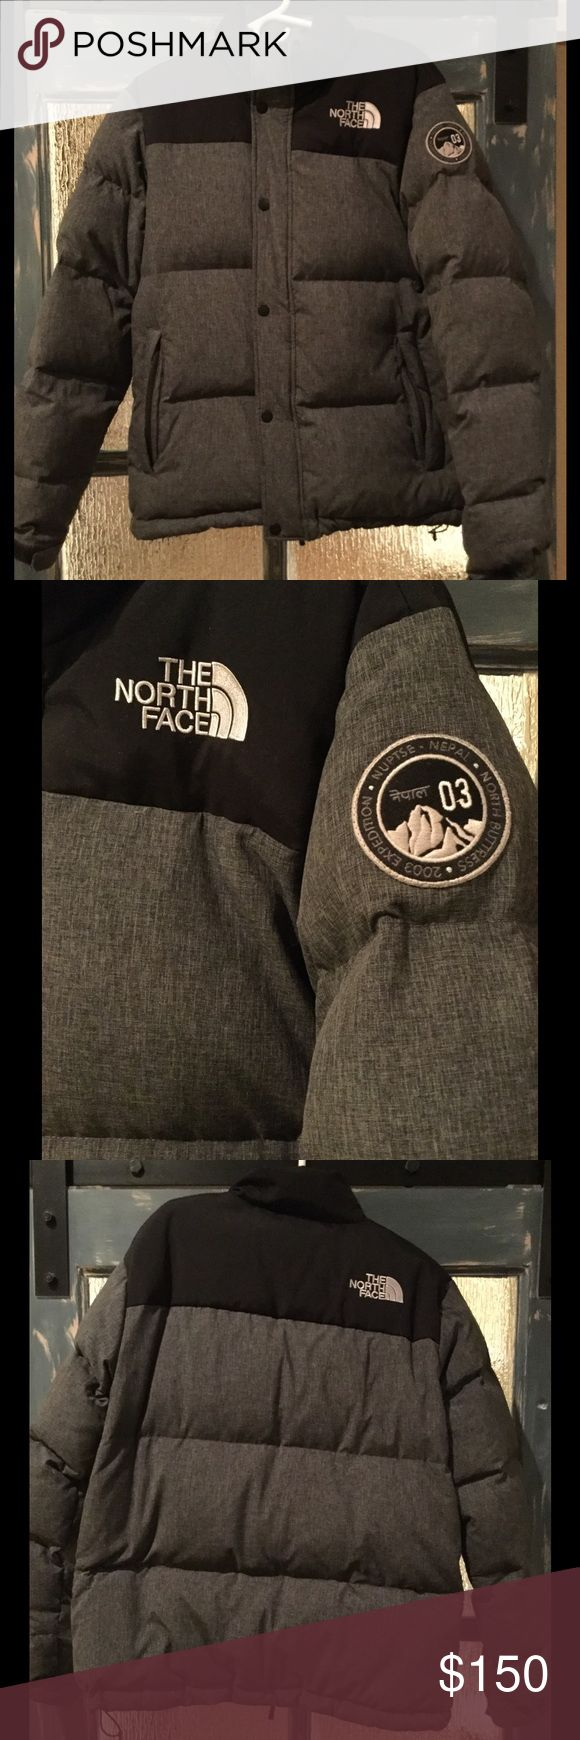 The North Face Nuptse jacket Gray/Black. Medium The North Face Nuptse Jacket. Size Medium. Down filled for super warmth. It's a great Jacket but I just don't wear it very often The North Face Jackets & Coats Puffers